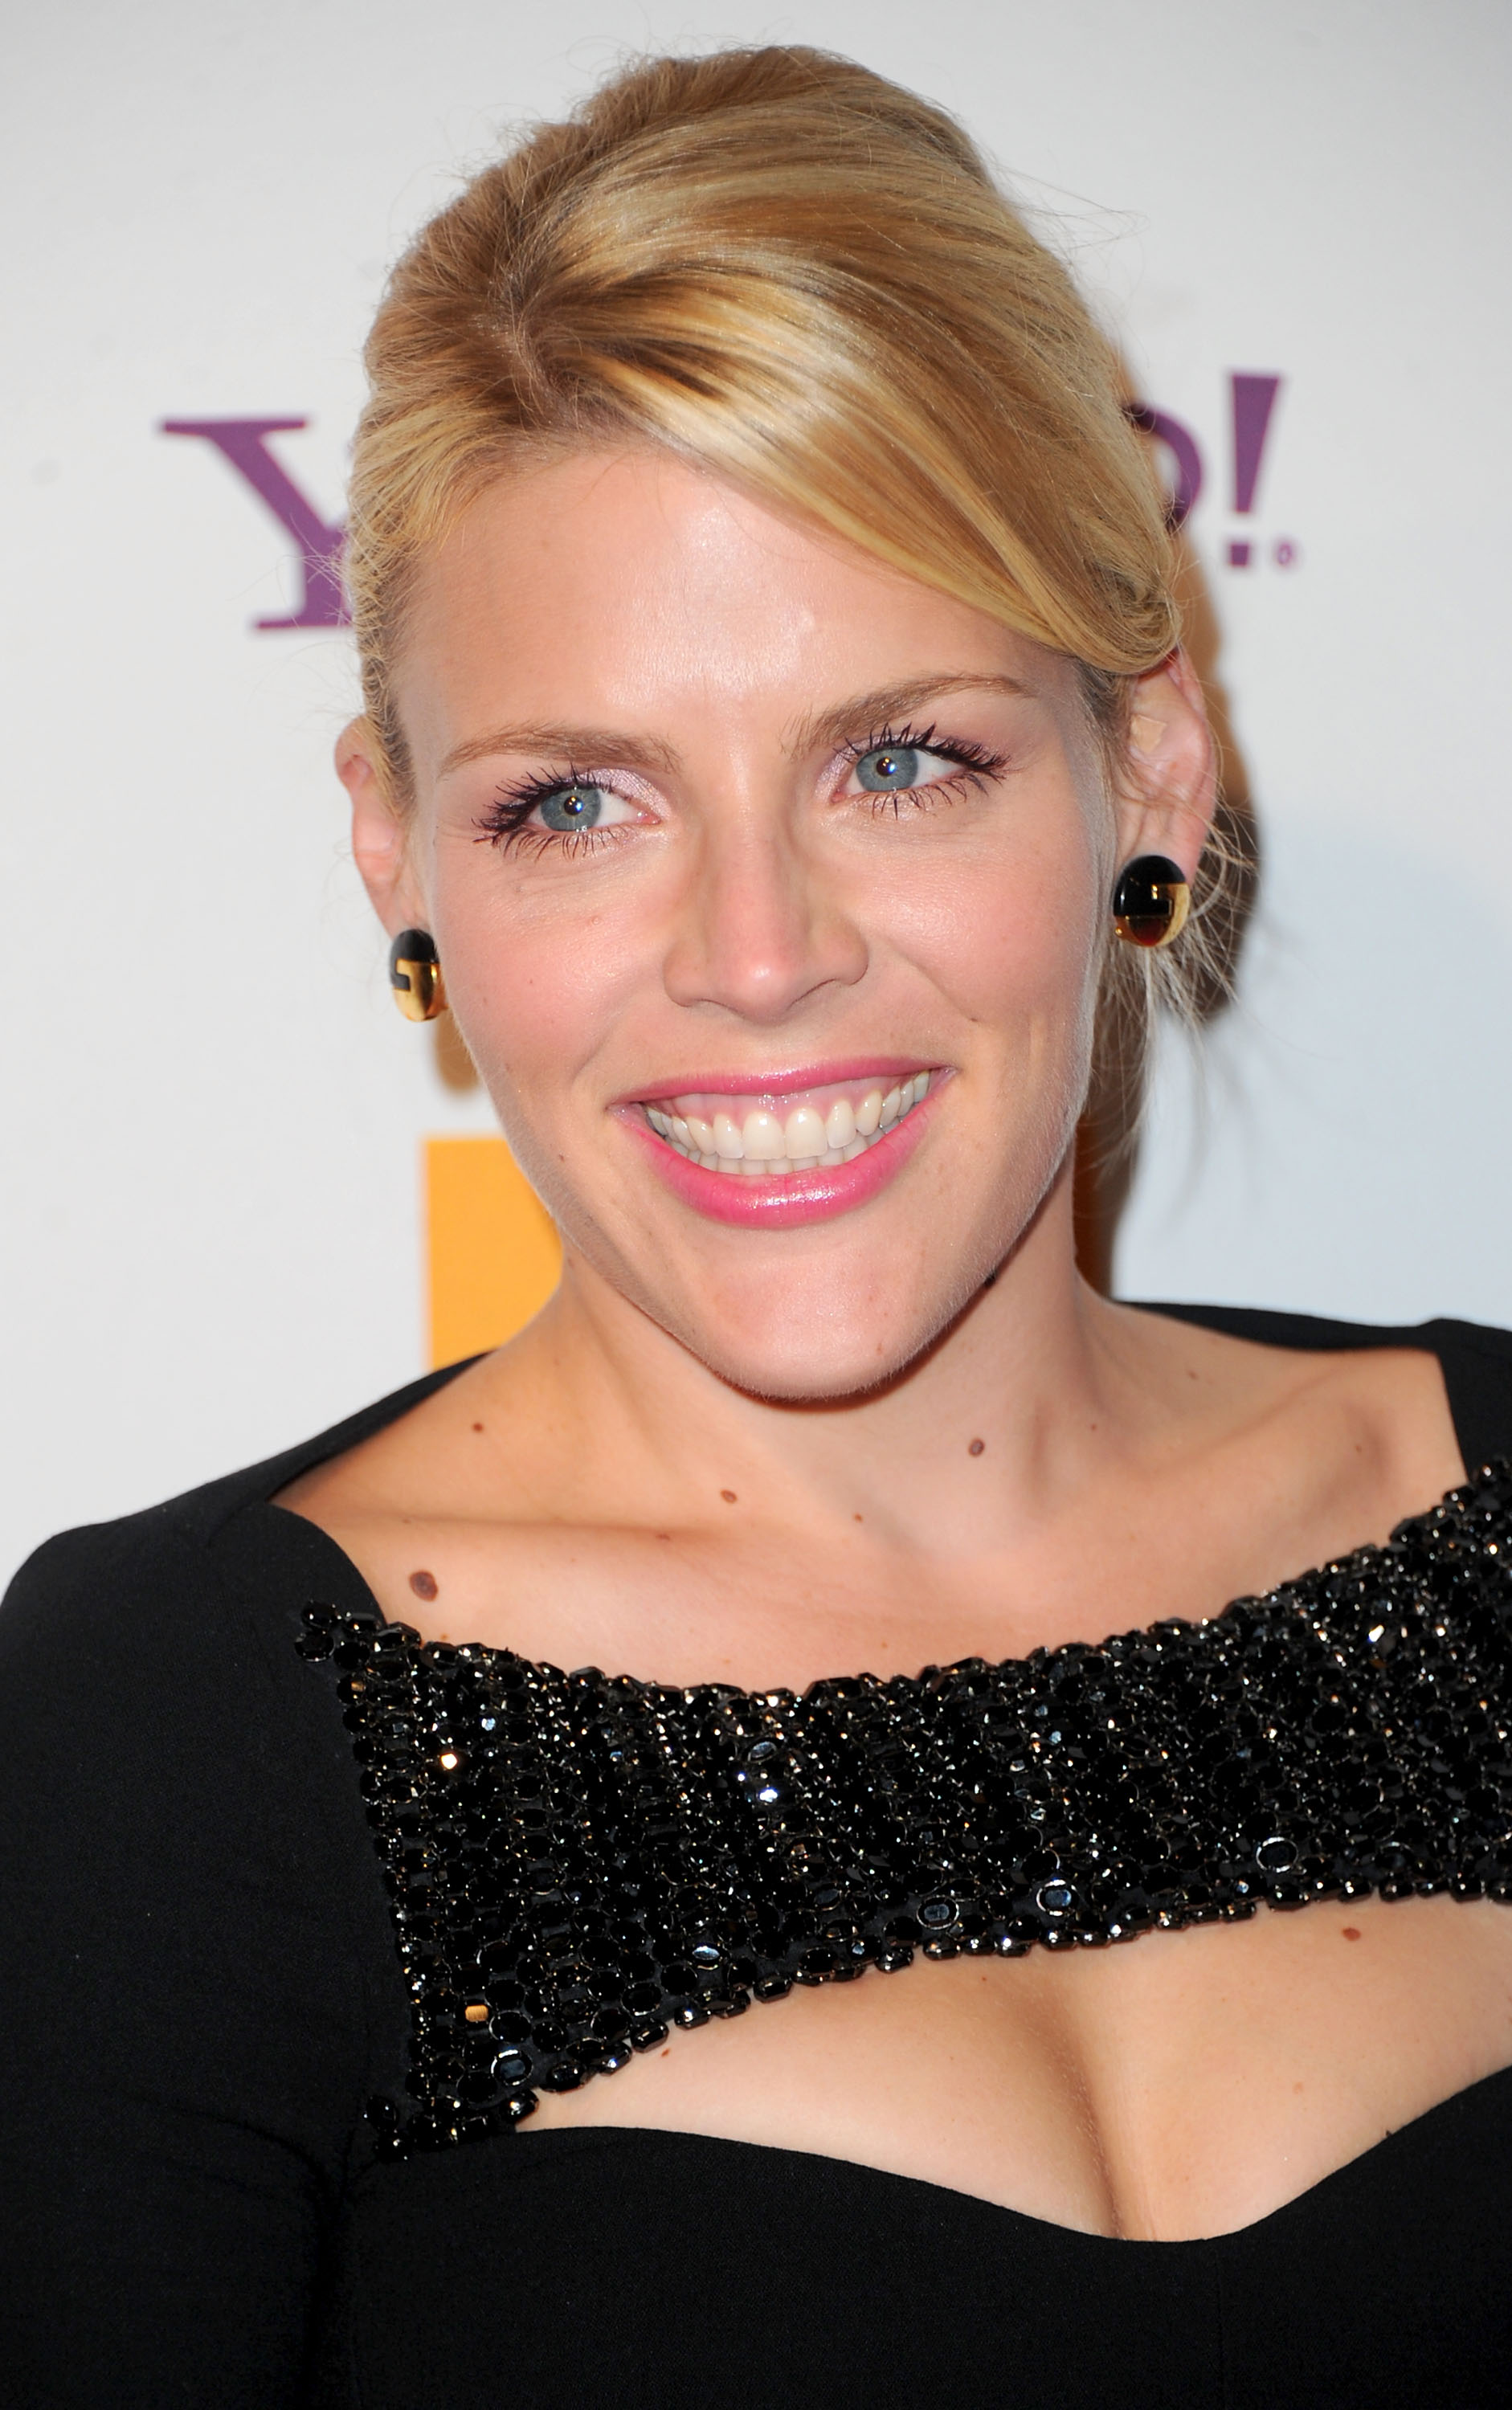 Busy Philipps Sister Busy Philipps Brought Her